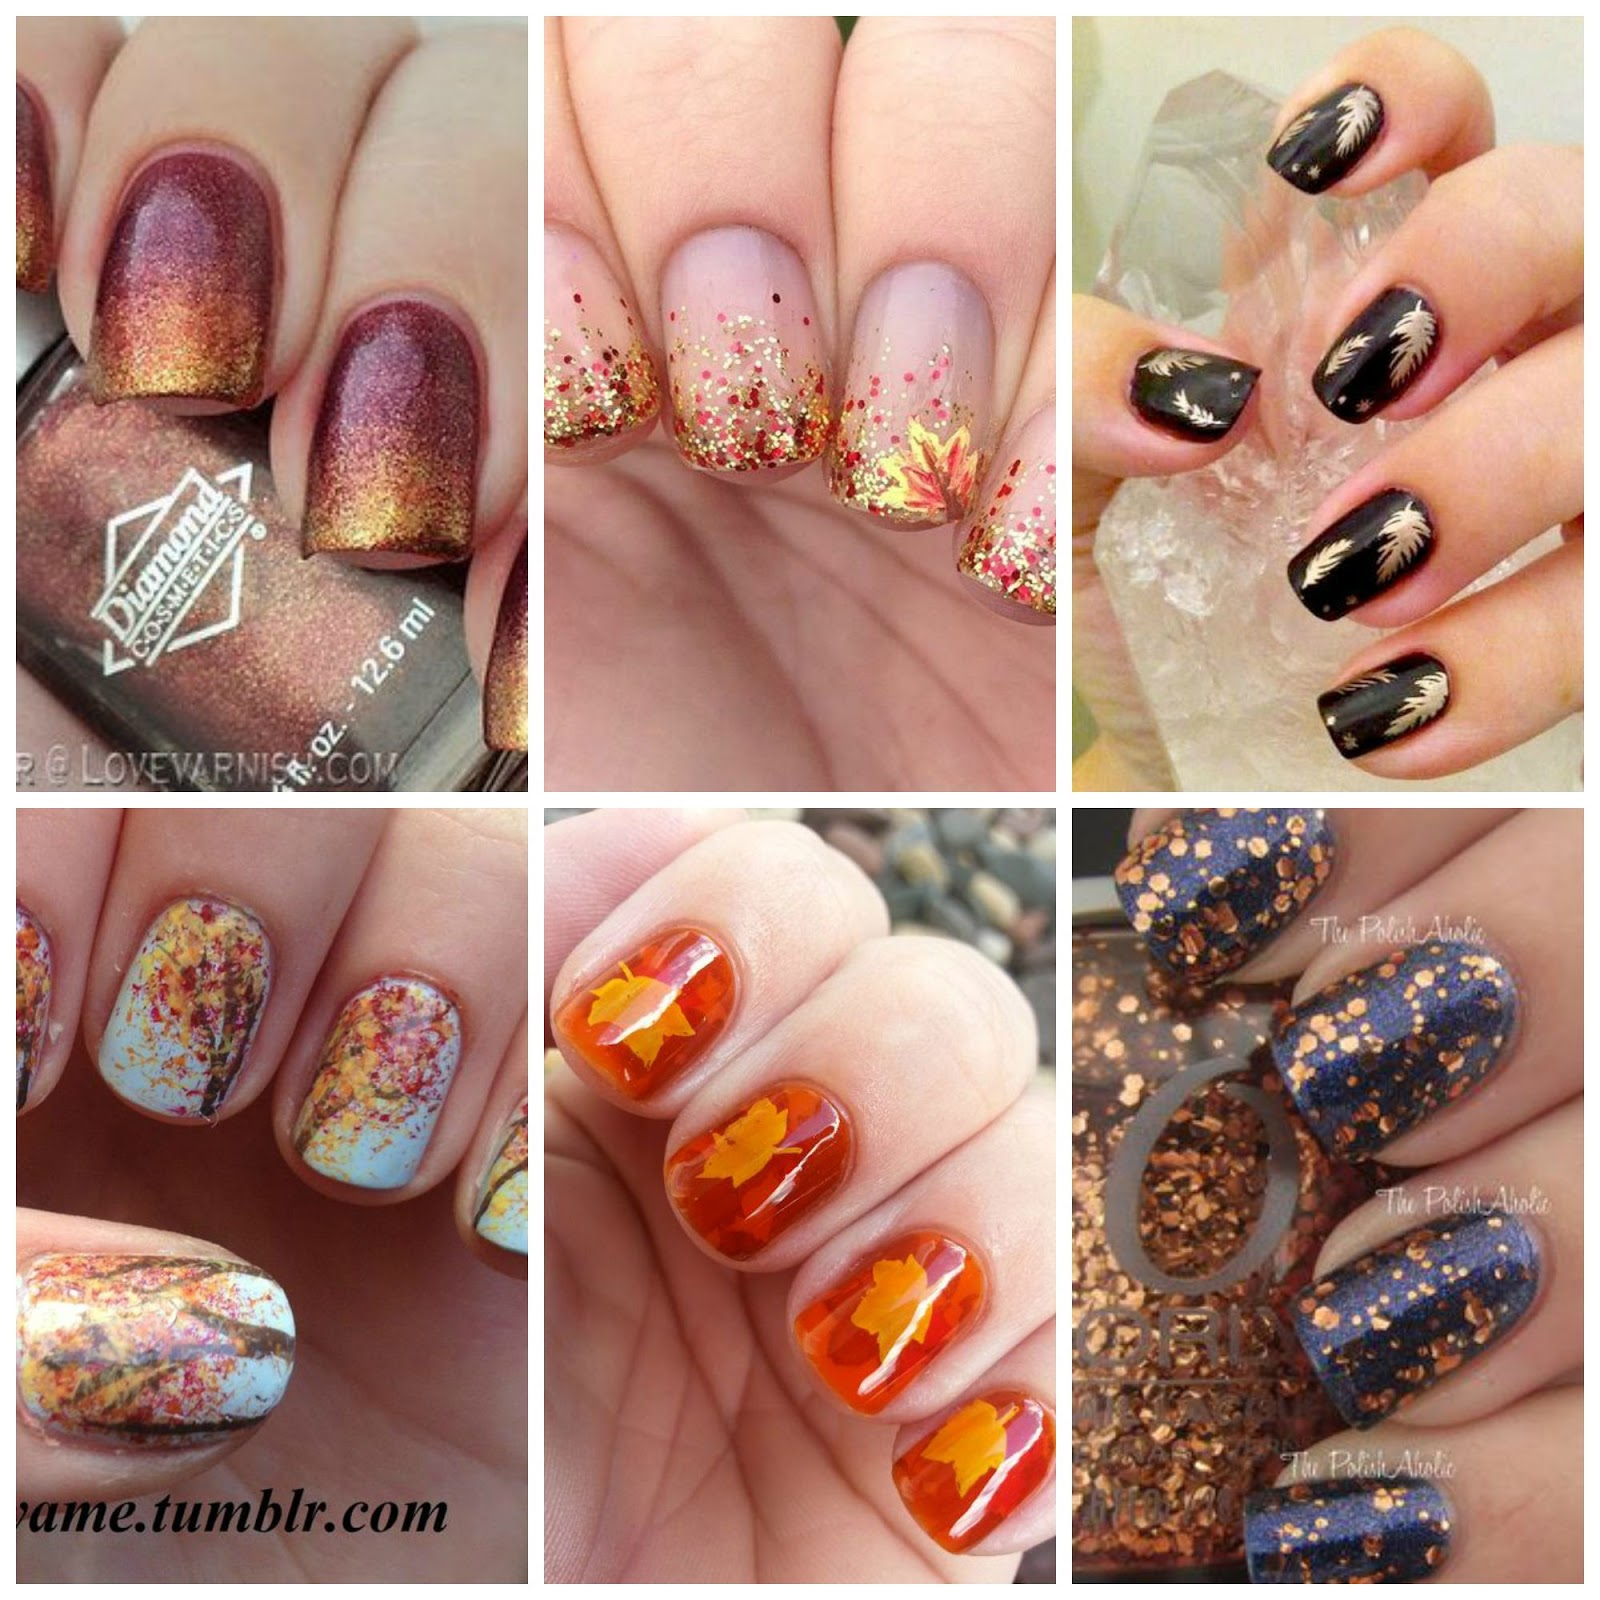 Last Autumn Nail Art Of The Year: Manicure Monday - Autumn Nails Inspiration